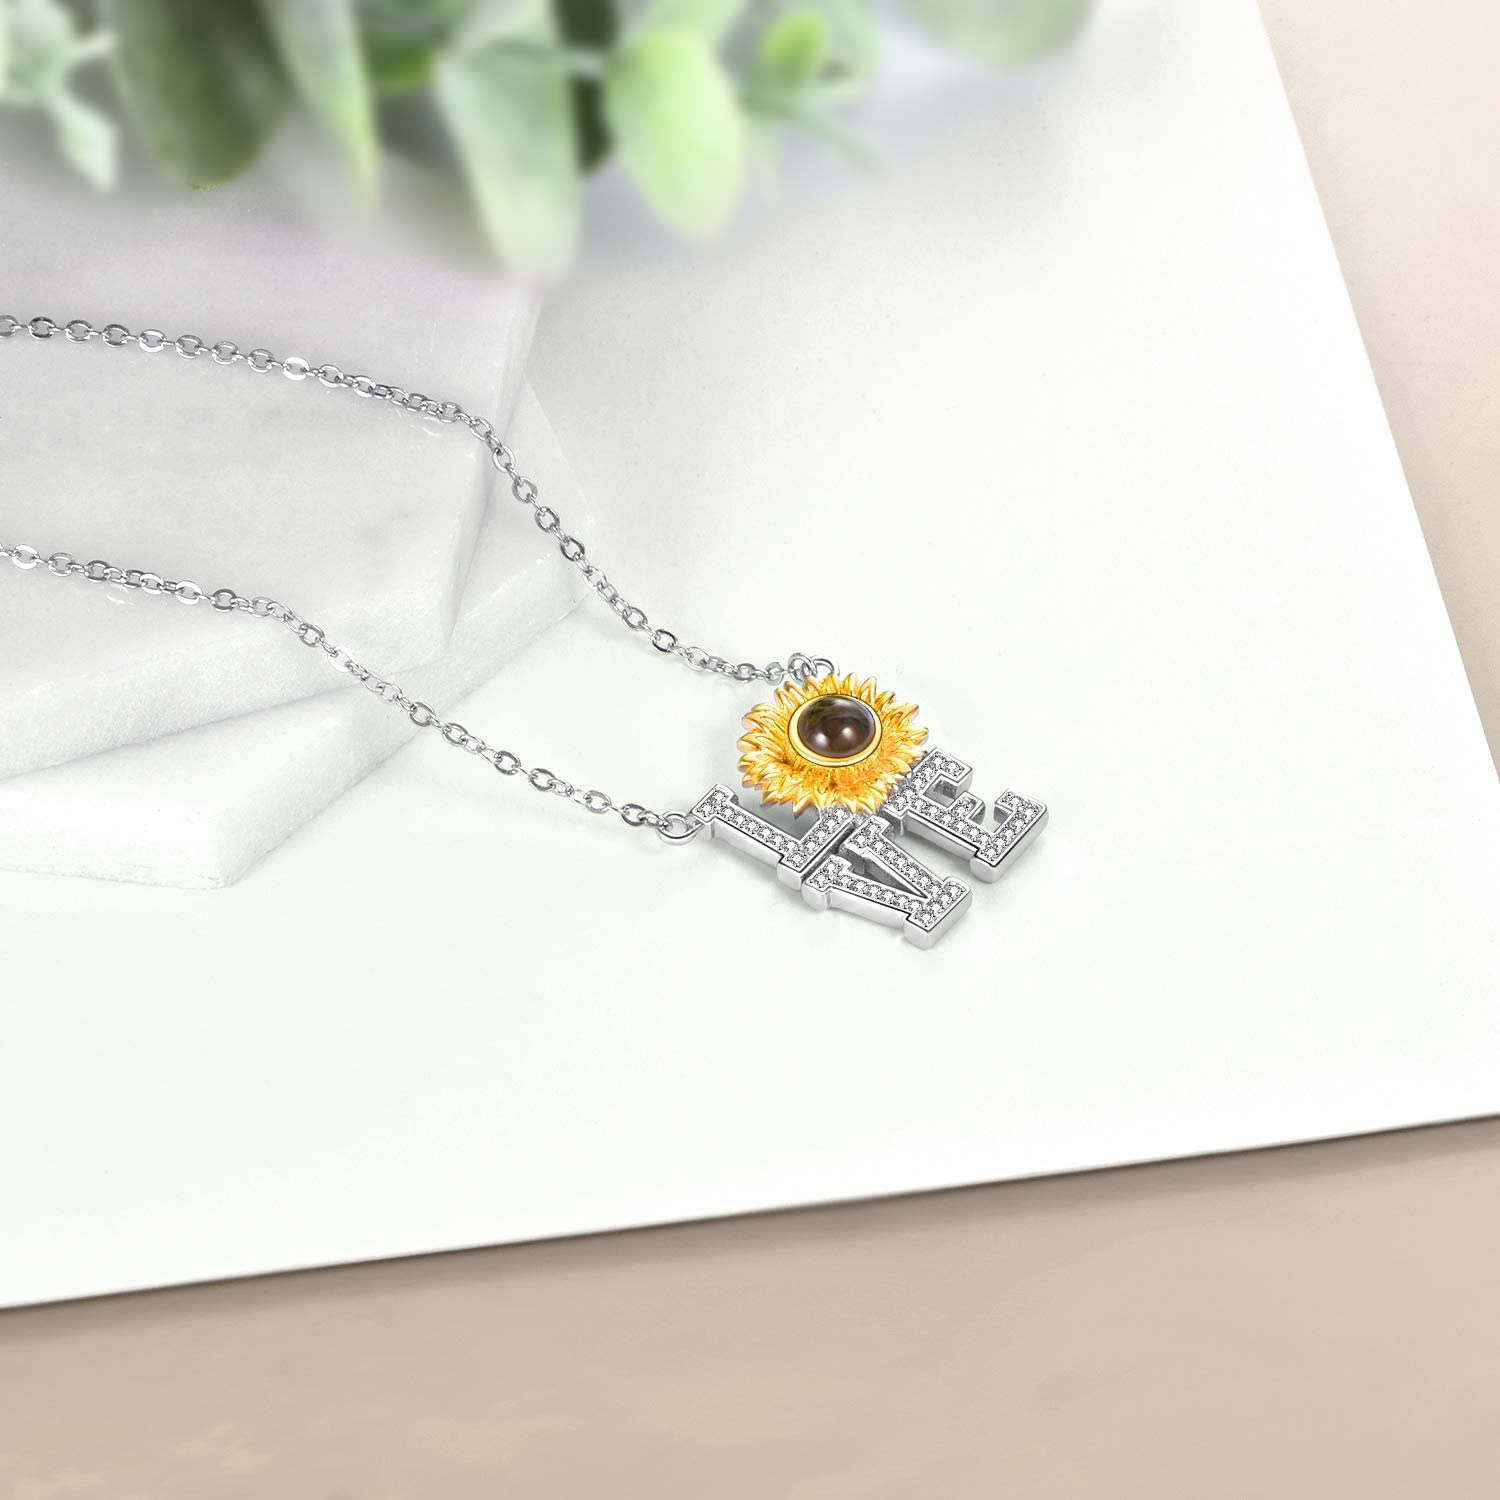 925 Sterling Silver I Love You Necklace 100 Languages Sunflower Love Pendant Crystal Love Memory Projection Necklace